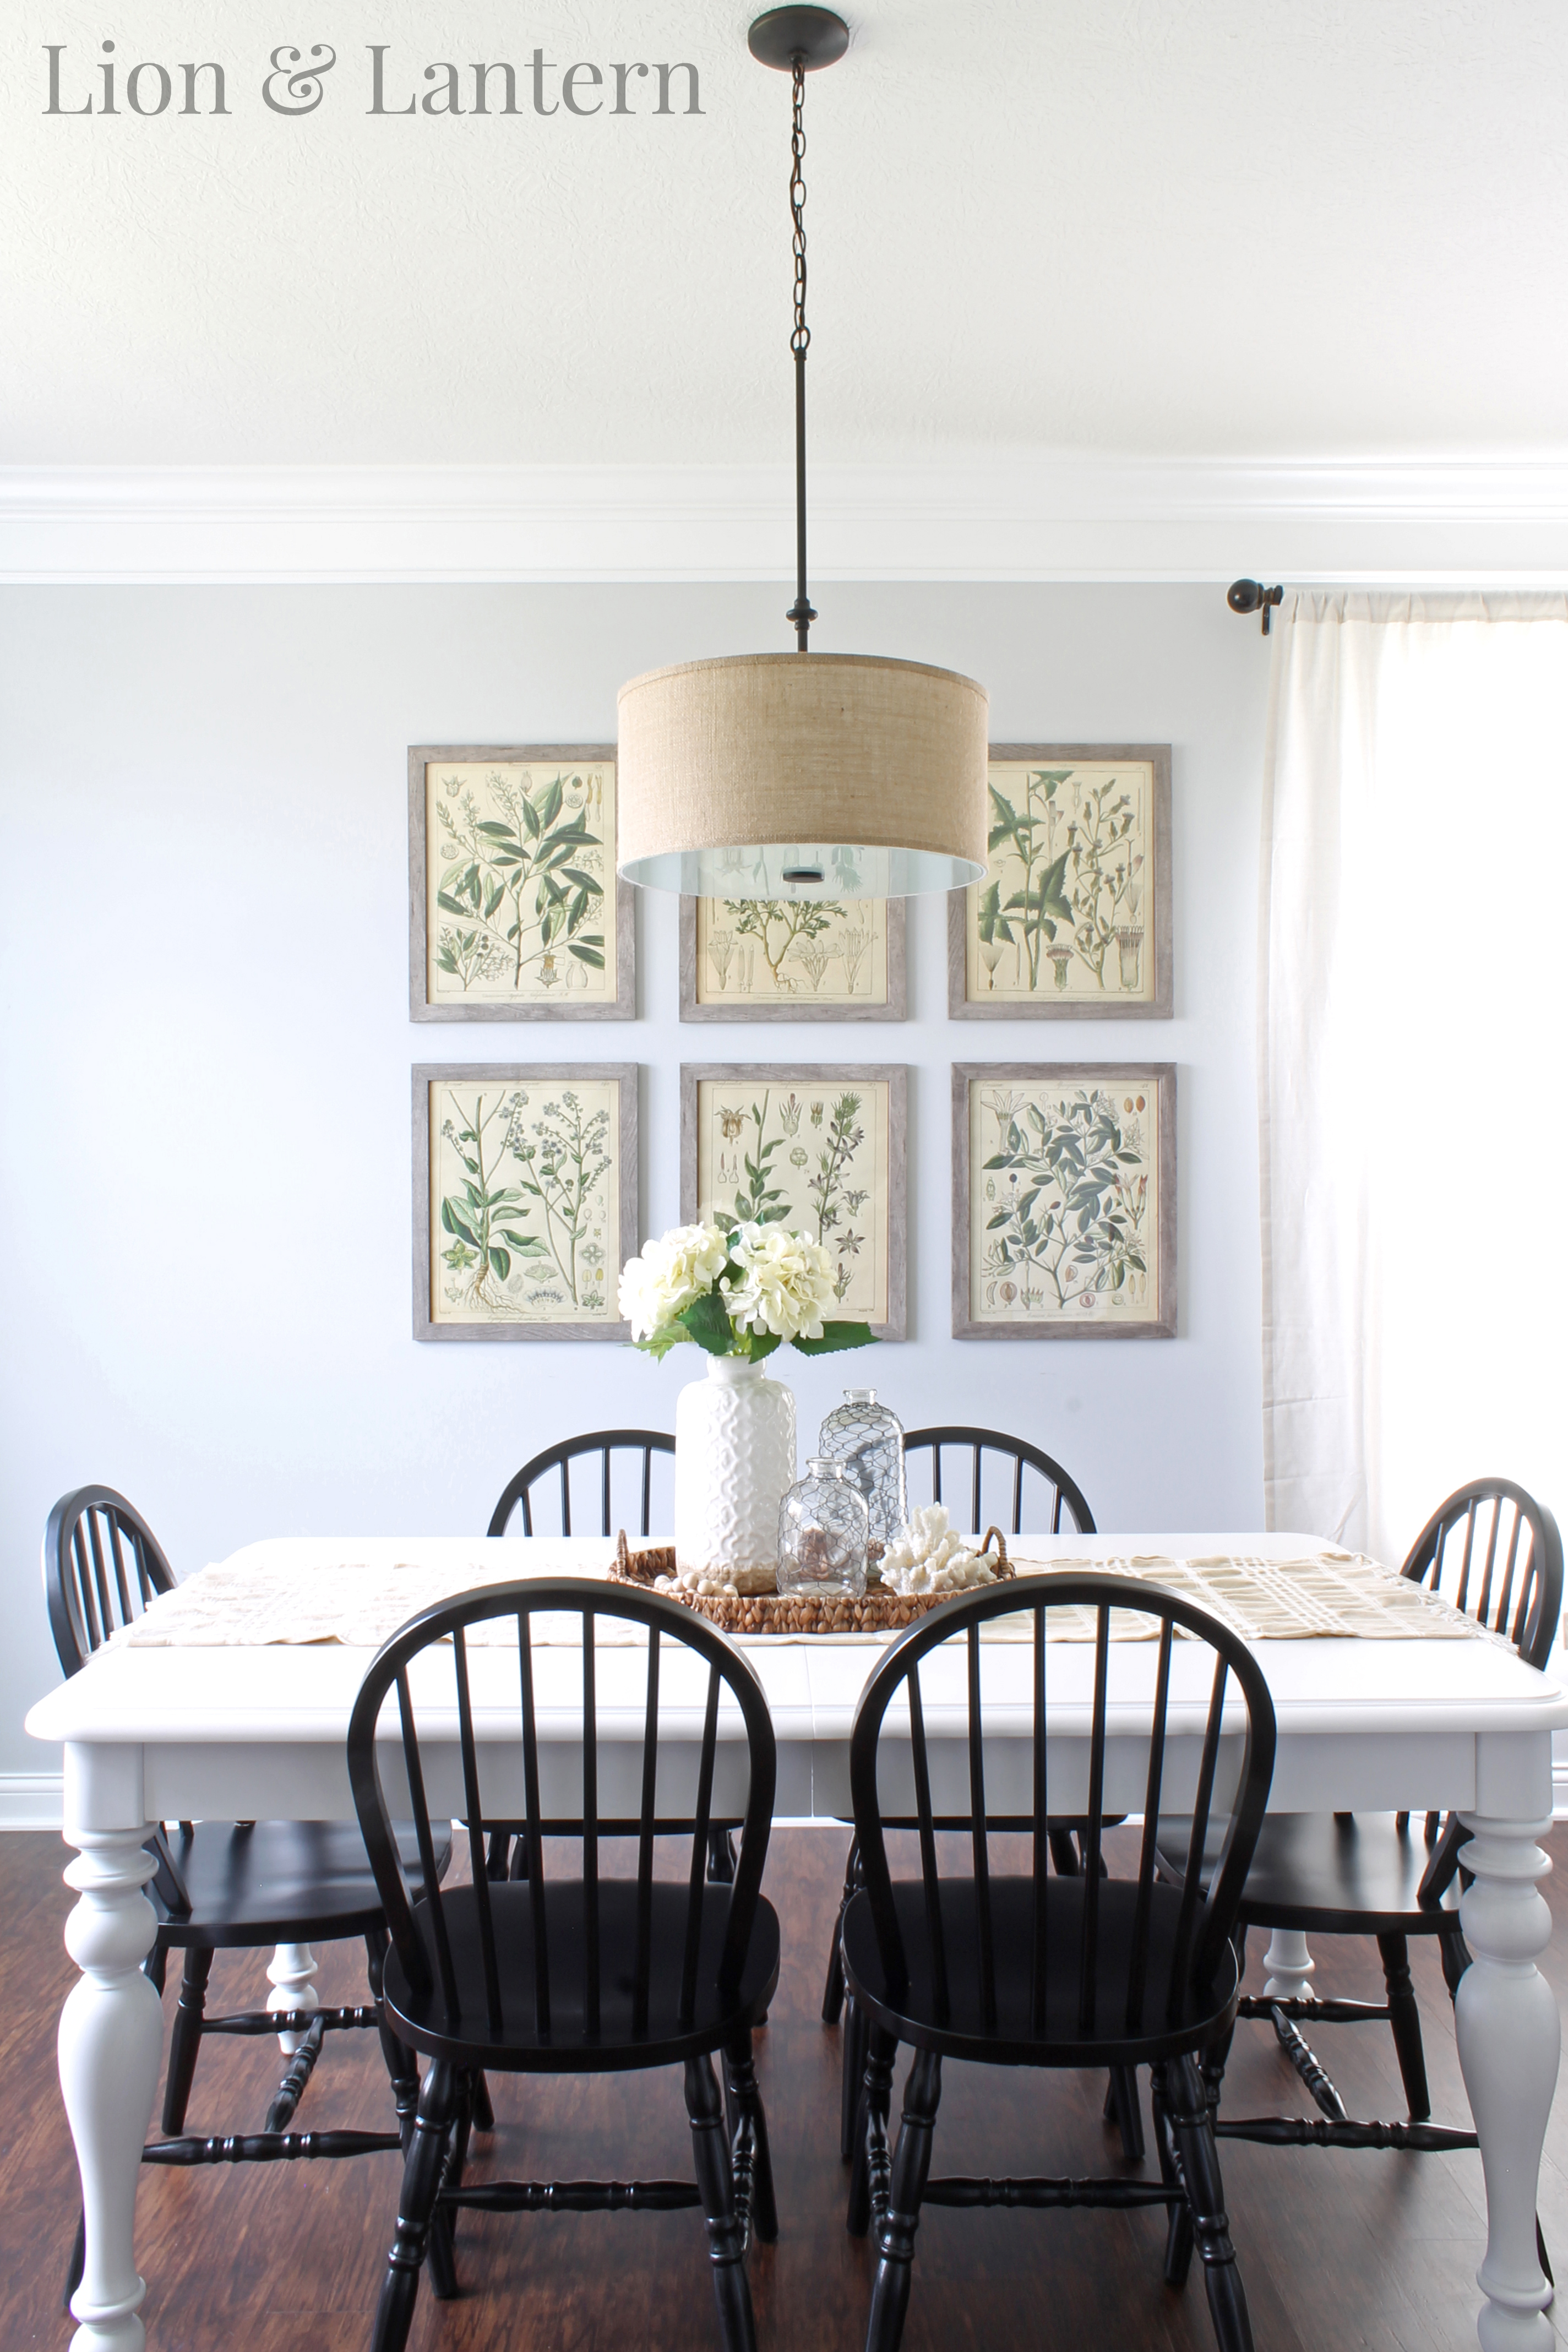 Coastal Farmhouse Dining Room At LionAndLantern Botany Prints Botanical Hydrangeas